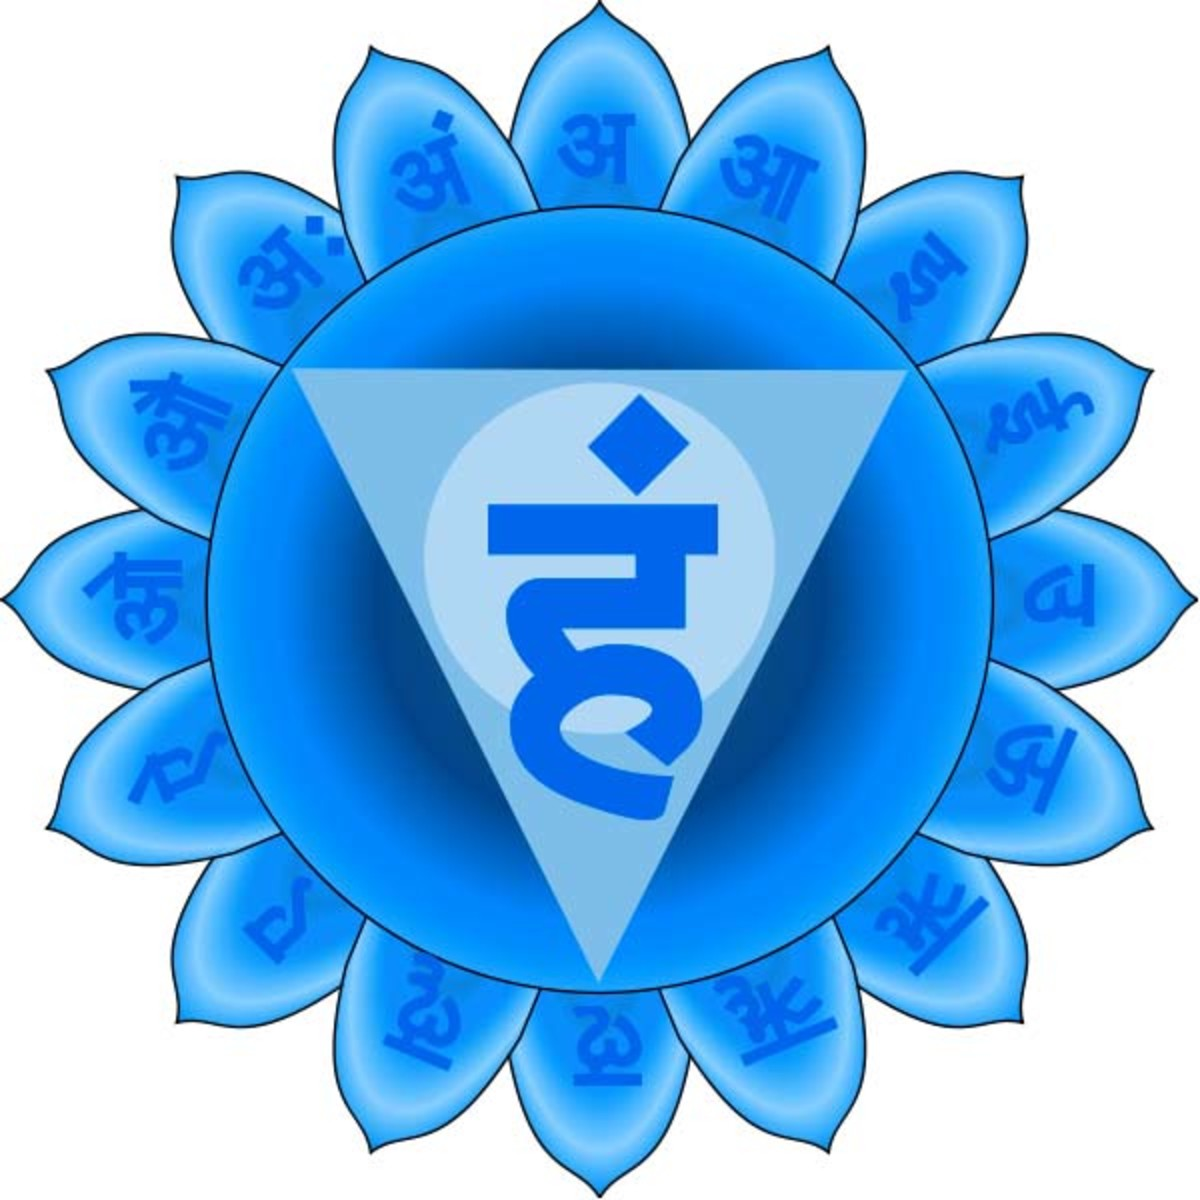 This is the symbol for the Throat Chakra, or Vishuddhi.